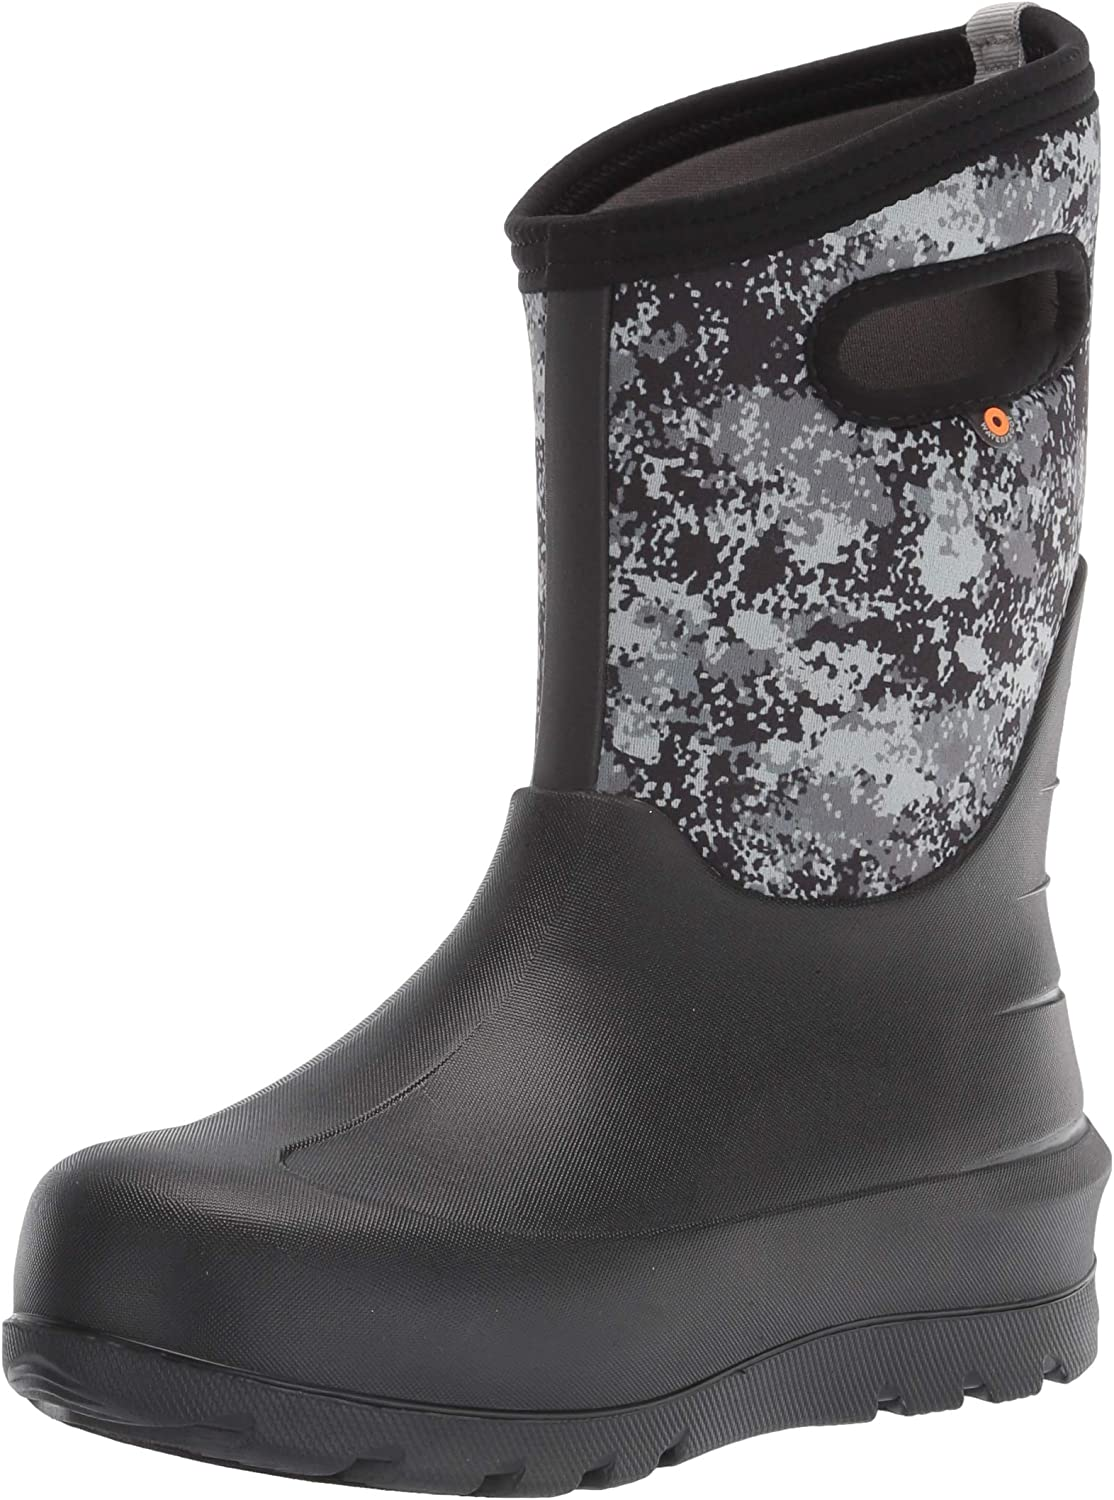 BOGS Unisex-Child San Diego Mall Neo-Classic All stores are sold Boot Rain